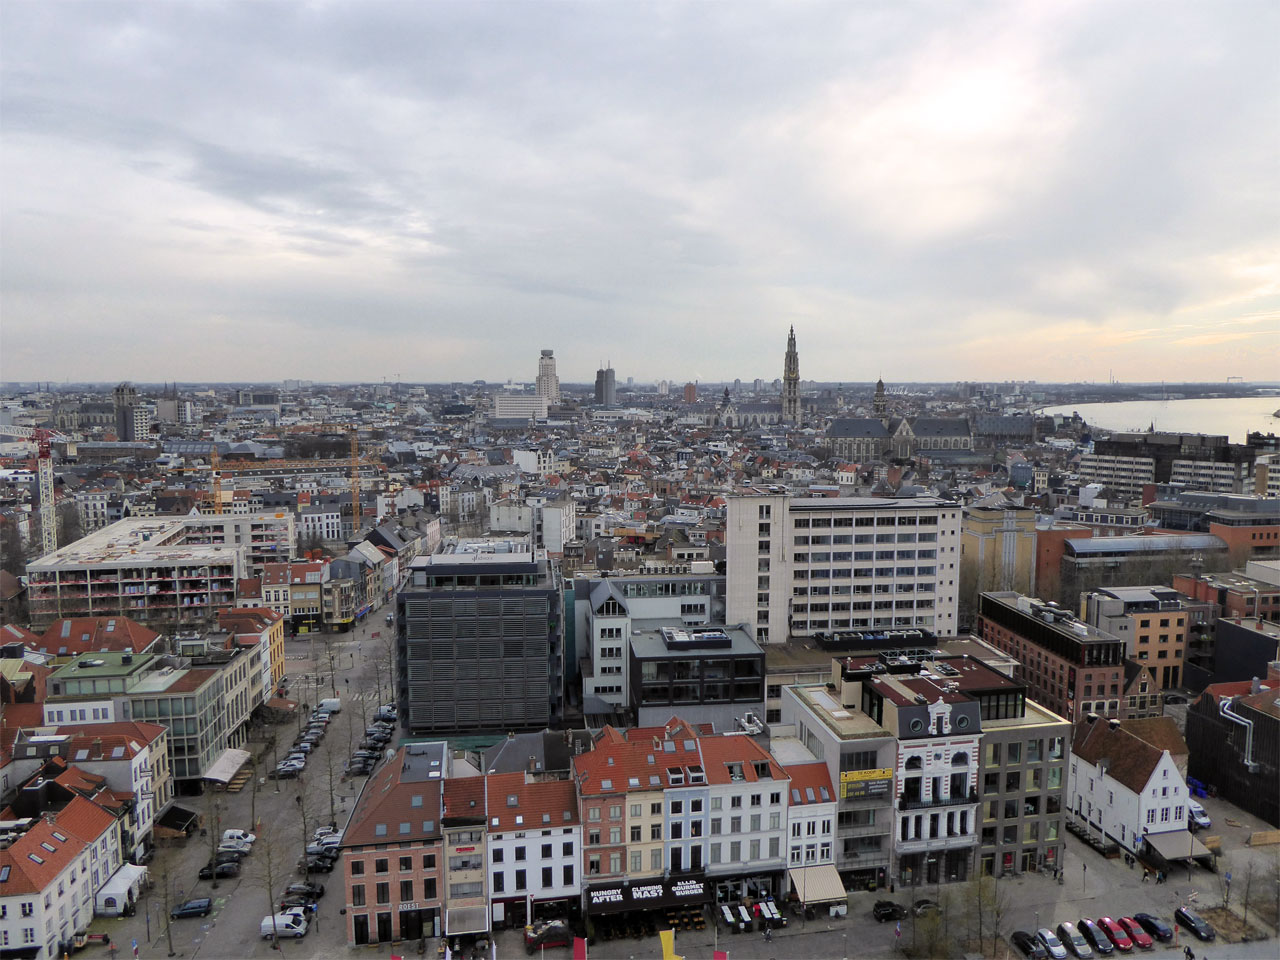 View from the MAS roof terrace, Antwerp